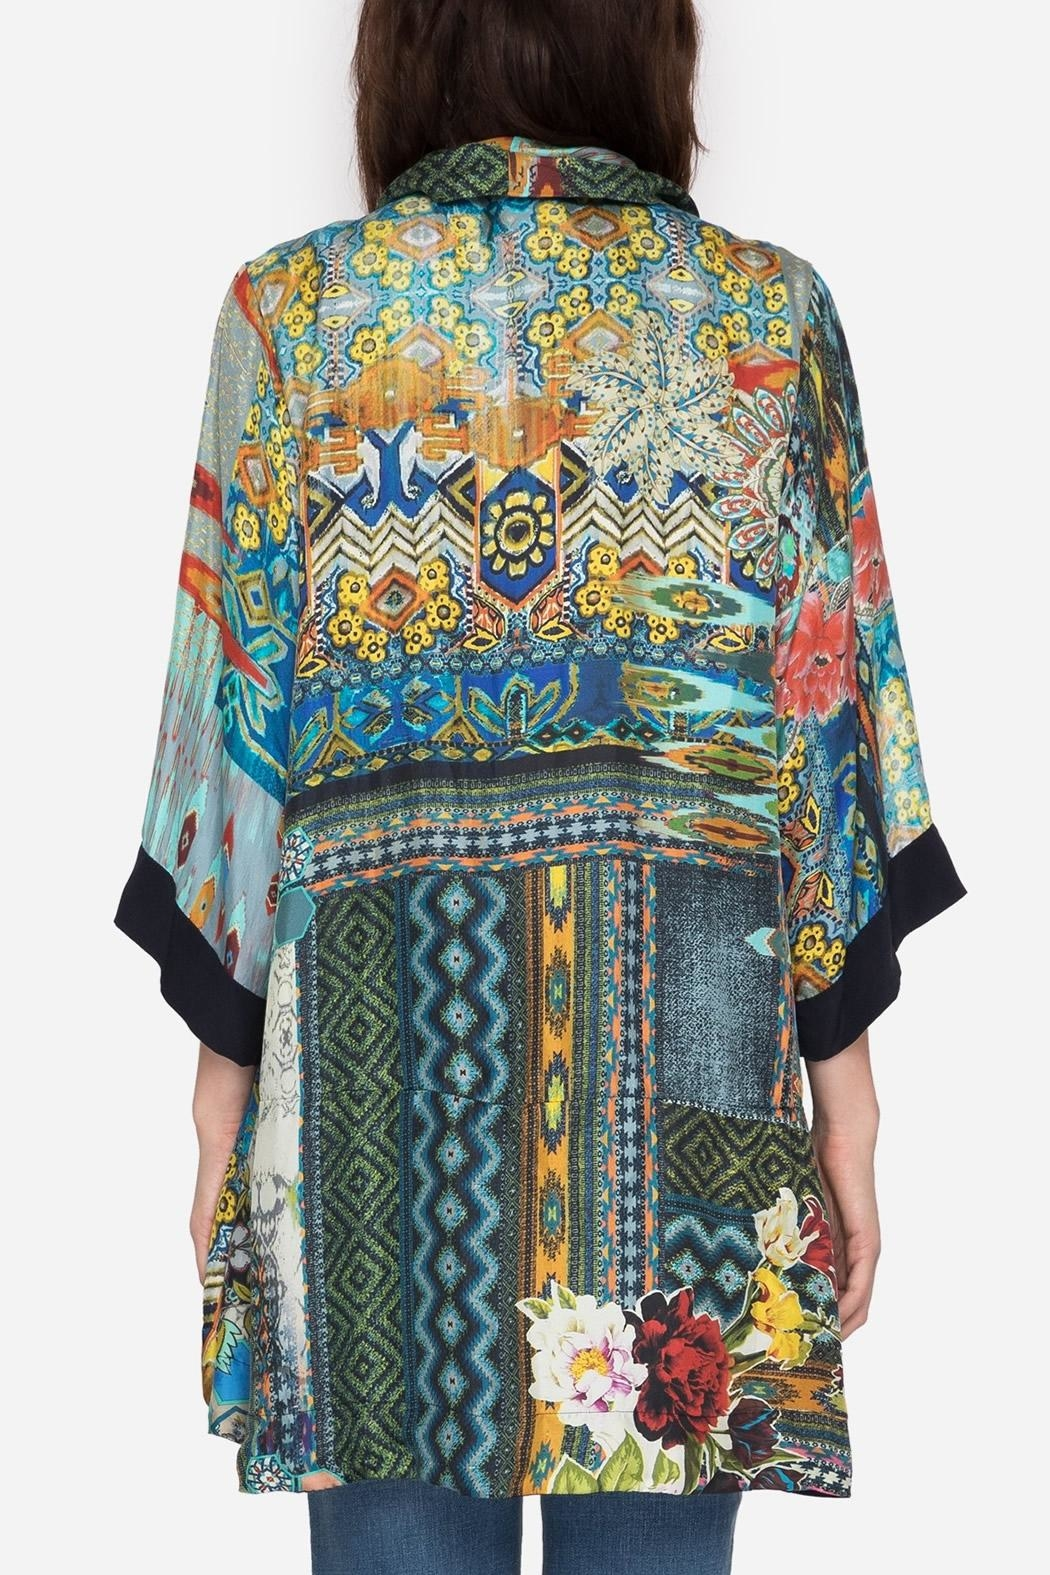 Johnny Was Koben Embroidered Kimono From Dallas By Hip